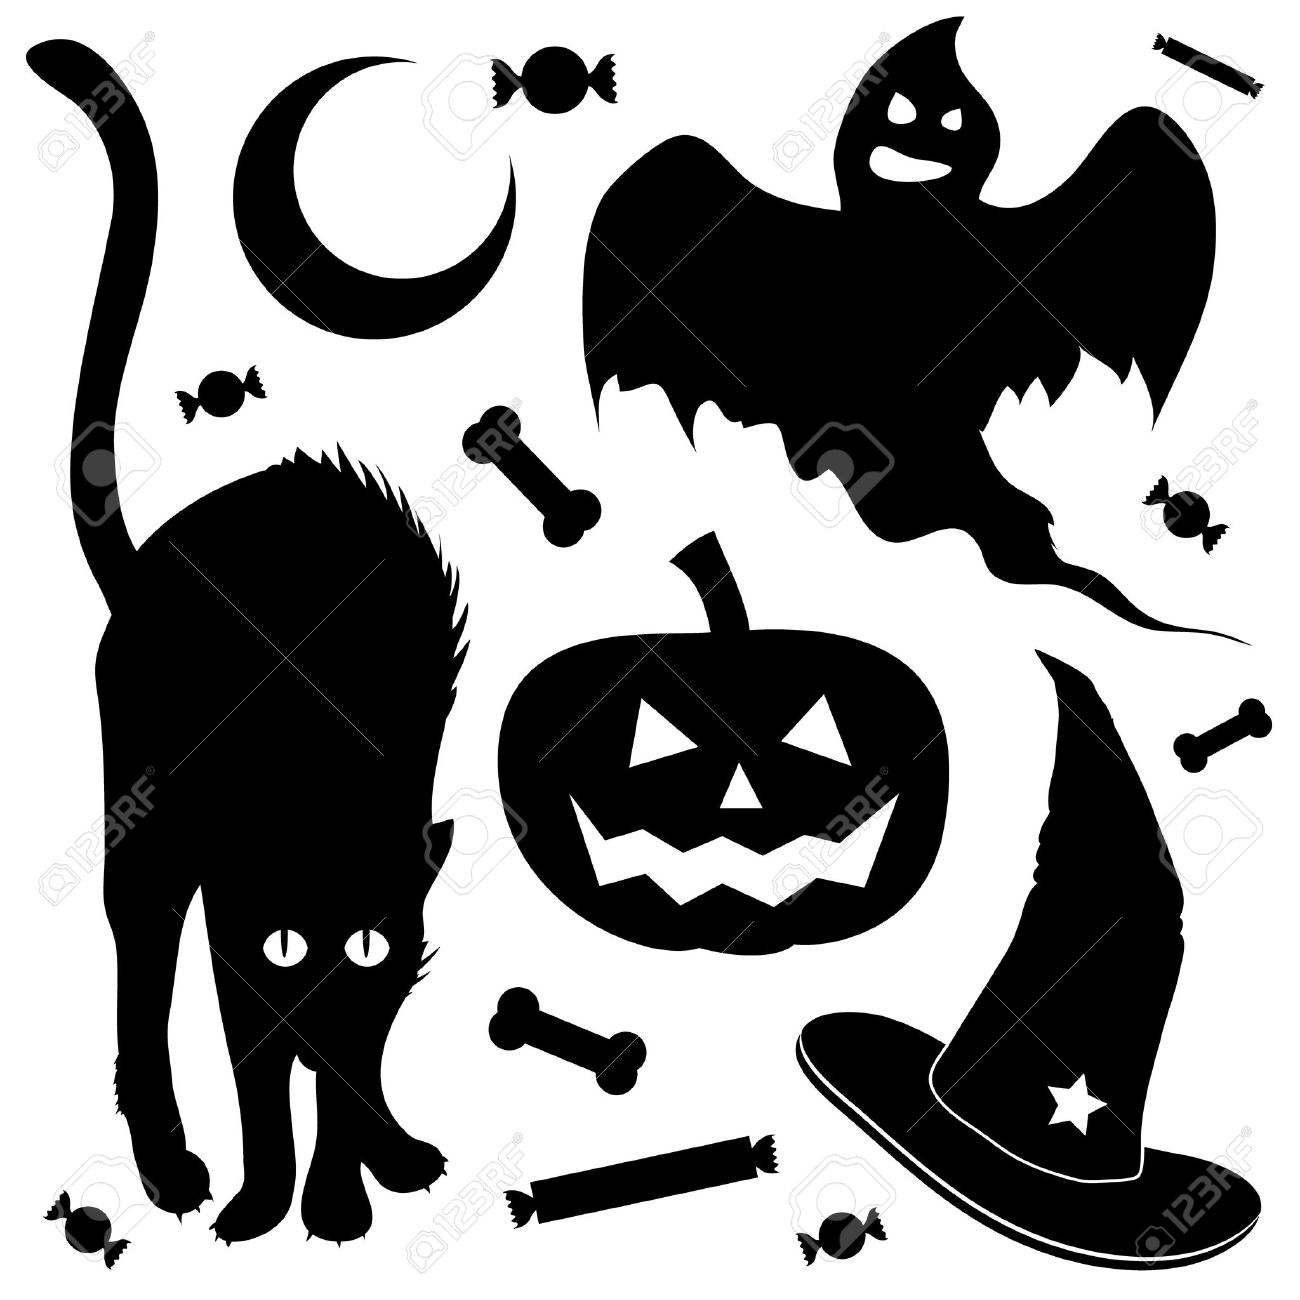 halloween cat halloween design elements silhouette set includes black cat jack o lantern - Black Cat Silhouette Halloween